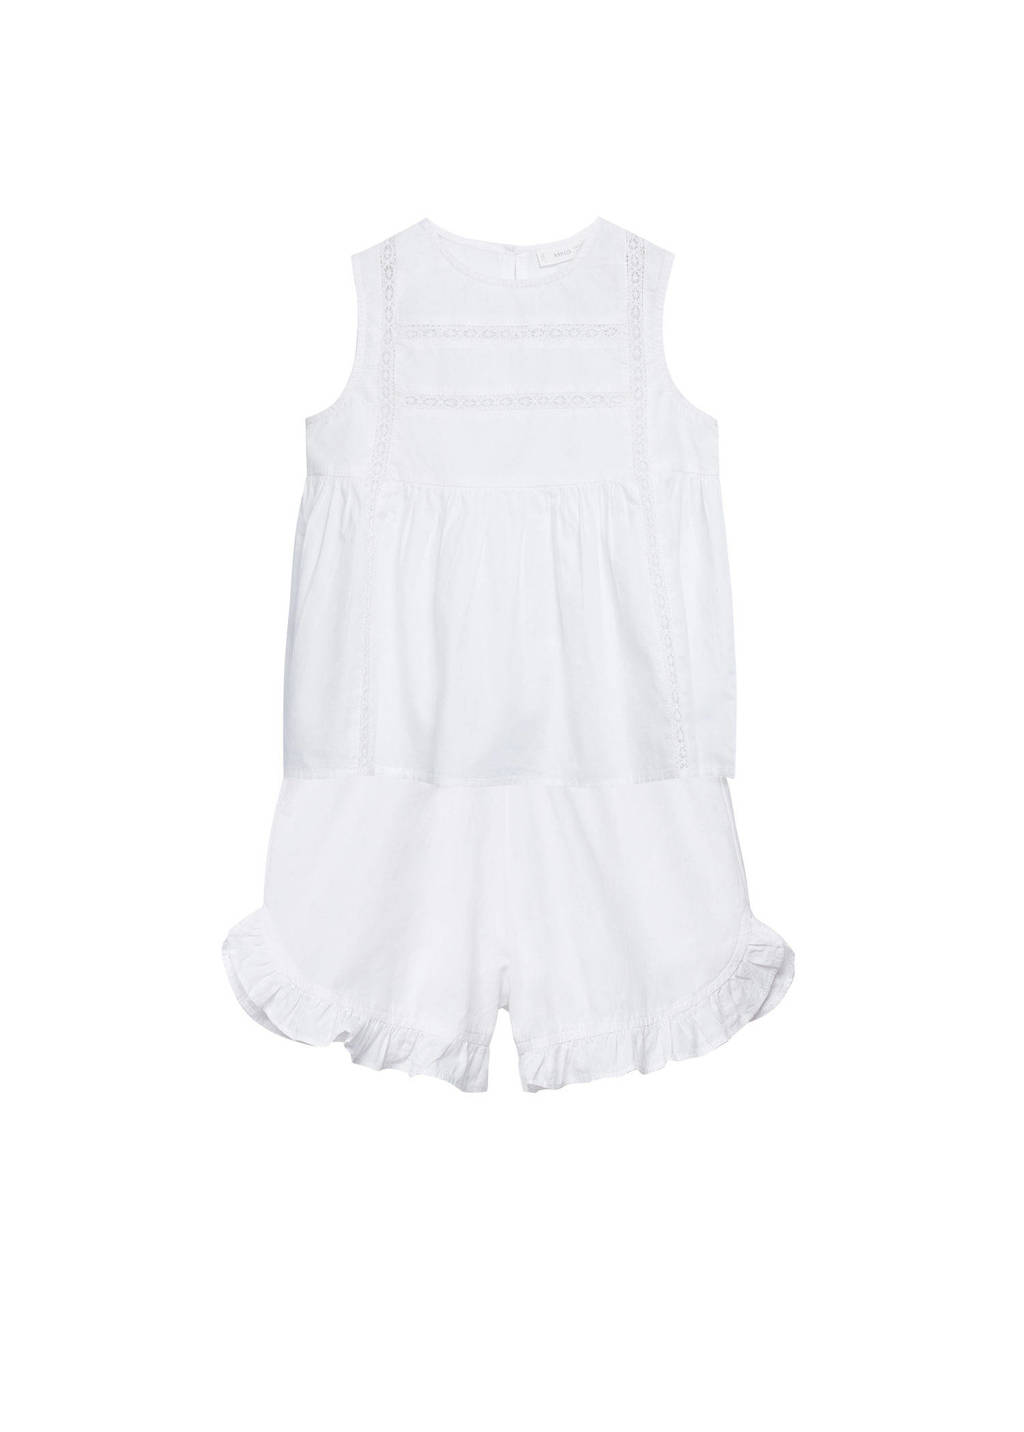 Mango Kids shortama met kant naturel wit